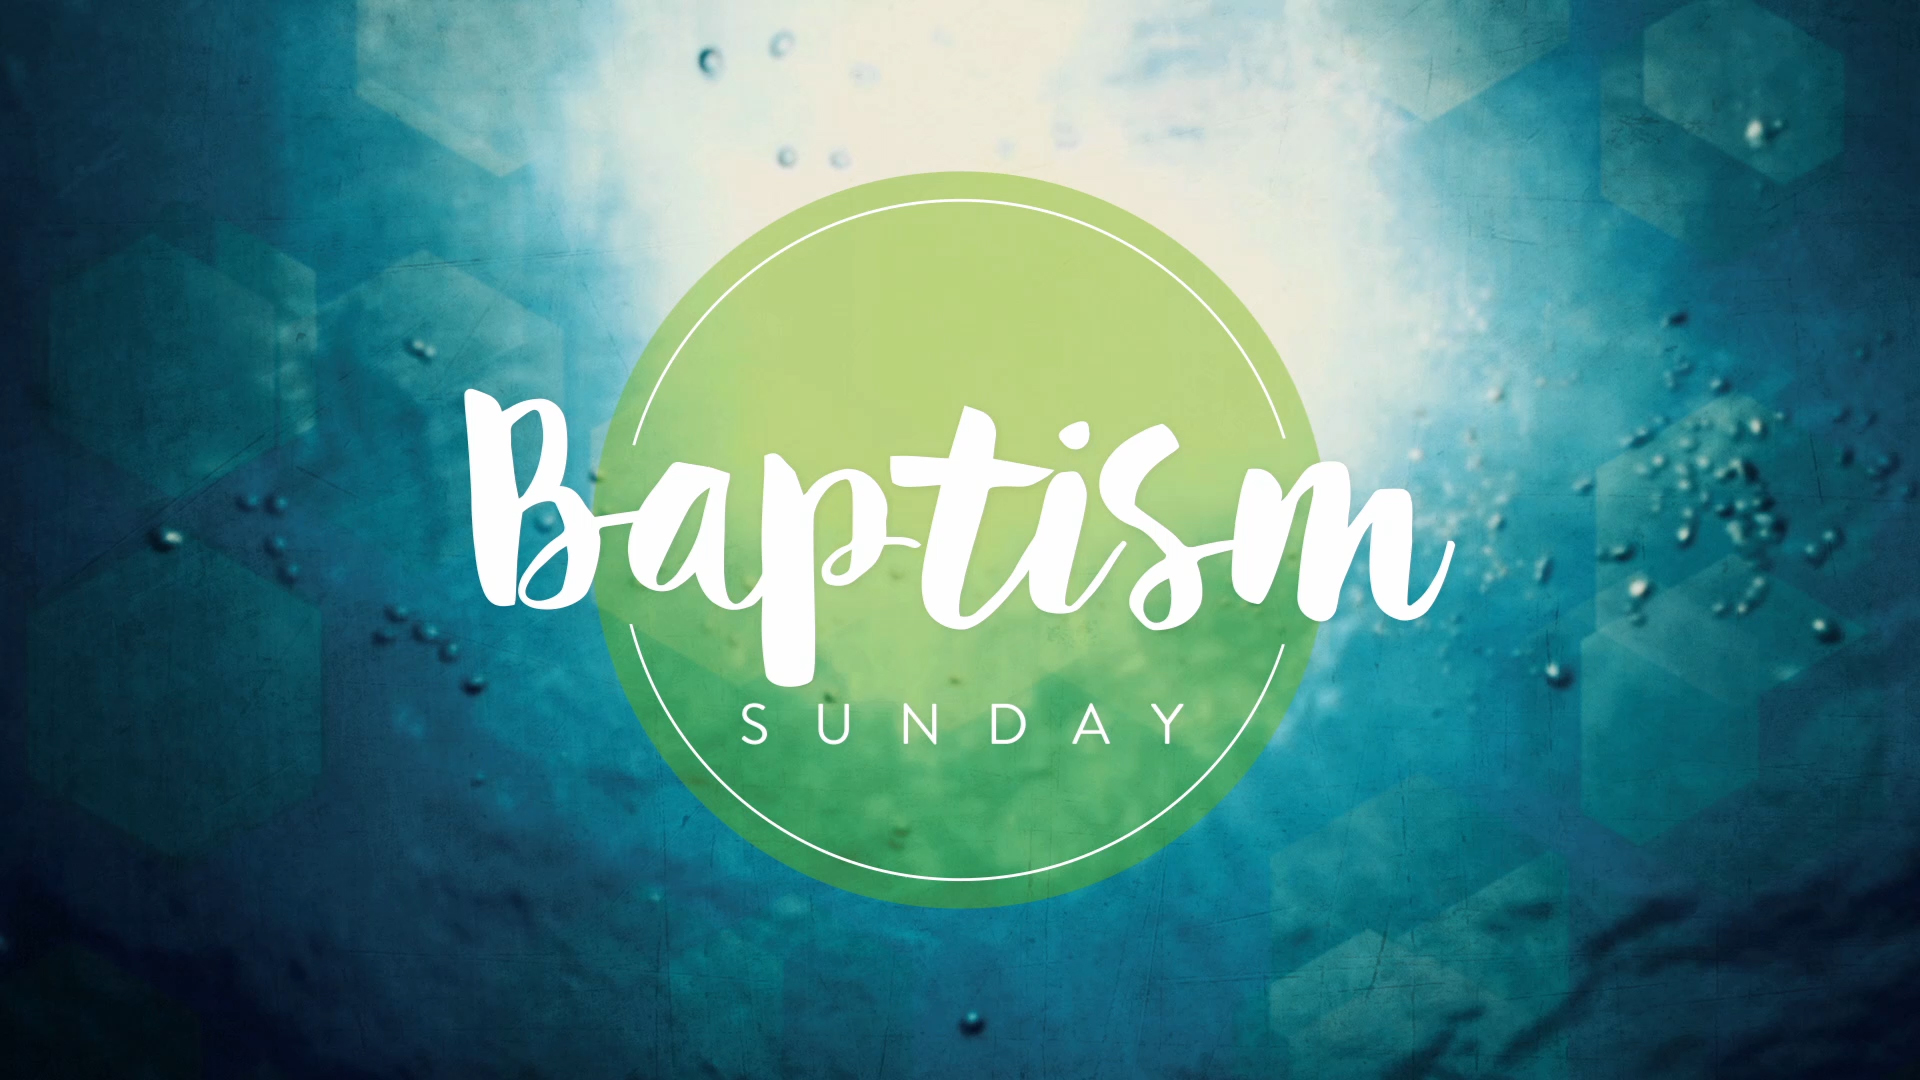 Baptism water baptism sunday wide 16x9